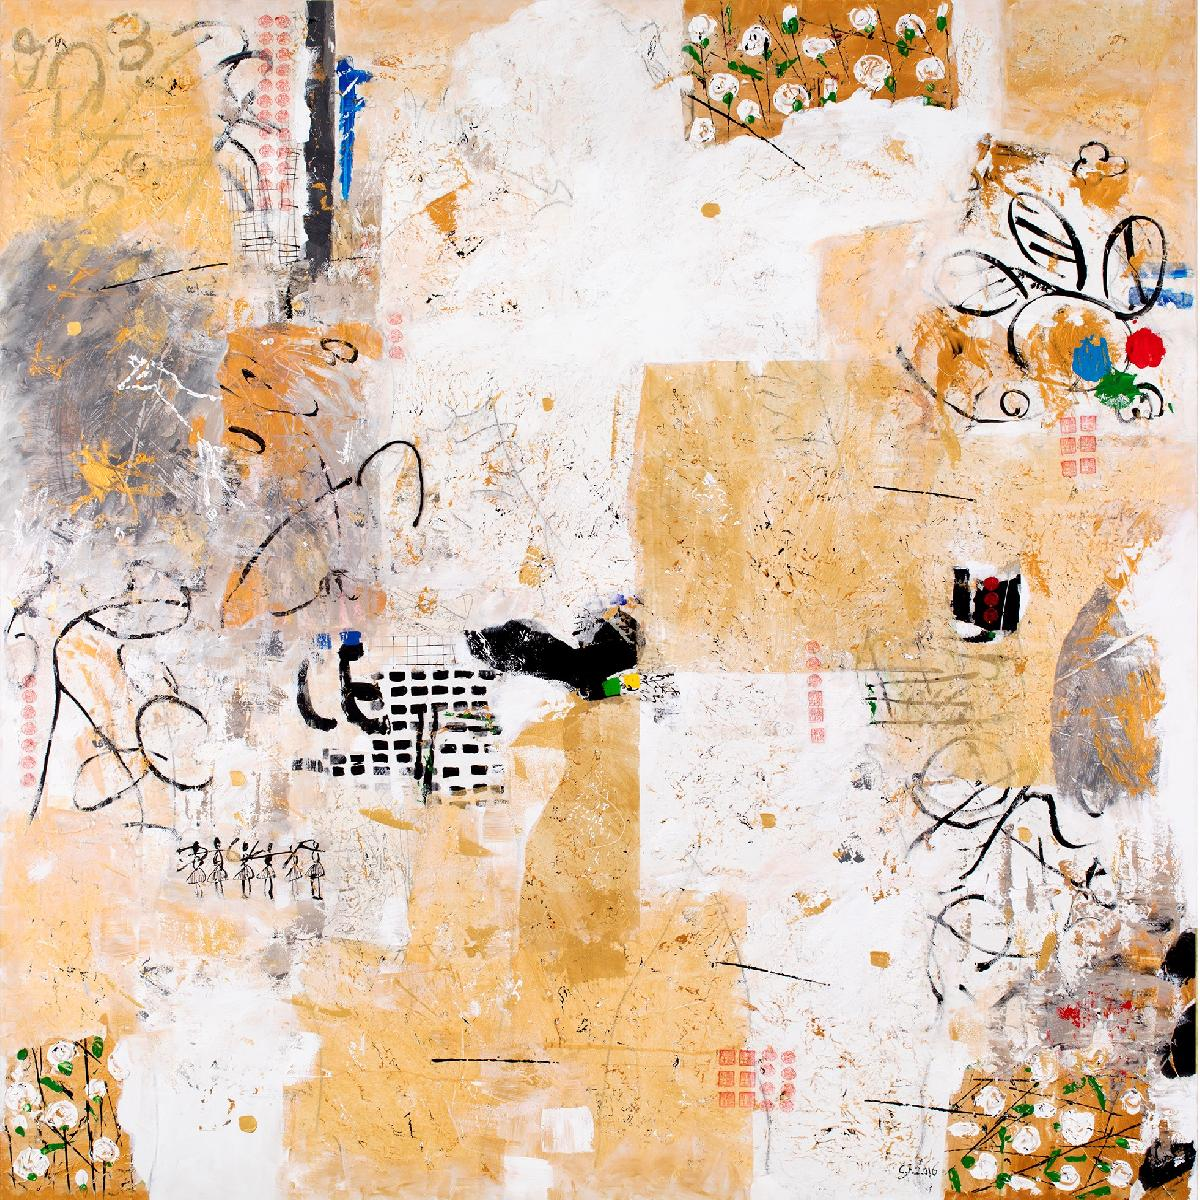 Canal Cheong Jagerroos, The Golden Garden, 180 x 180 cm, mixed media on canvas.jpg